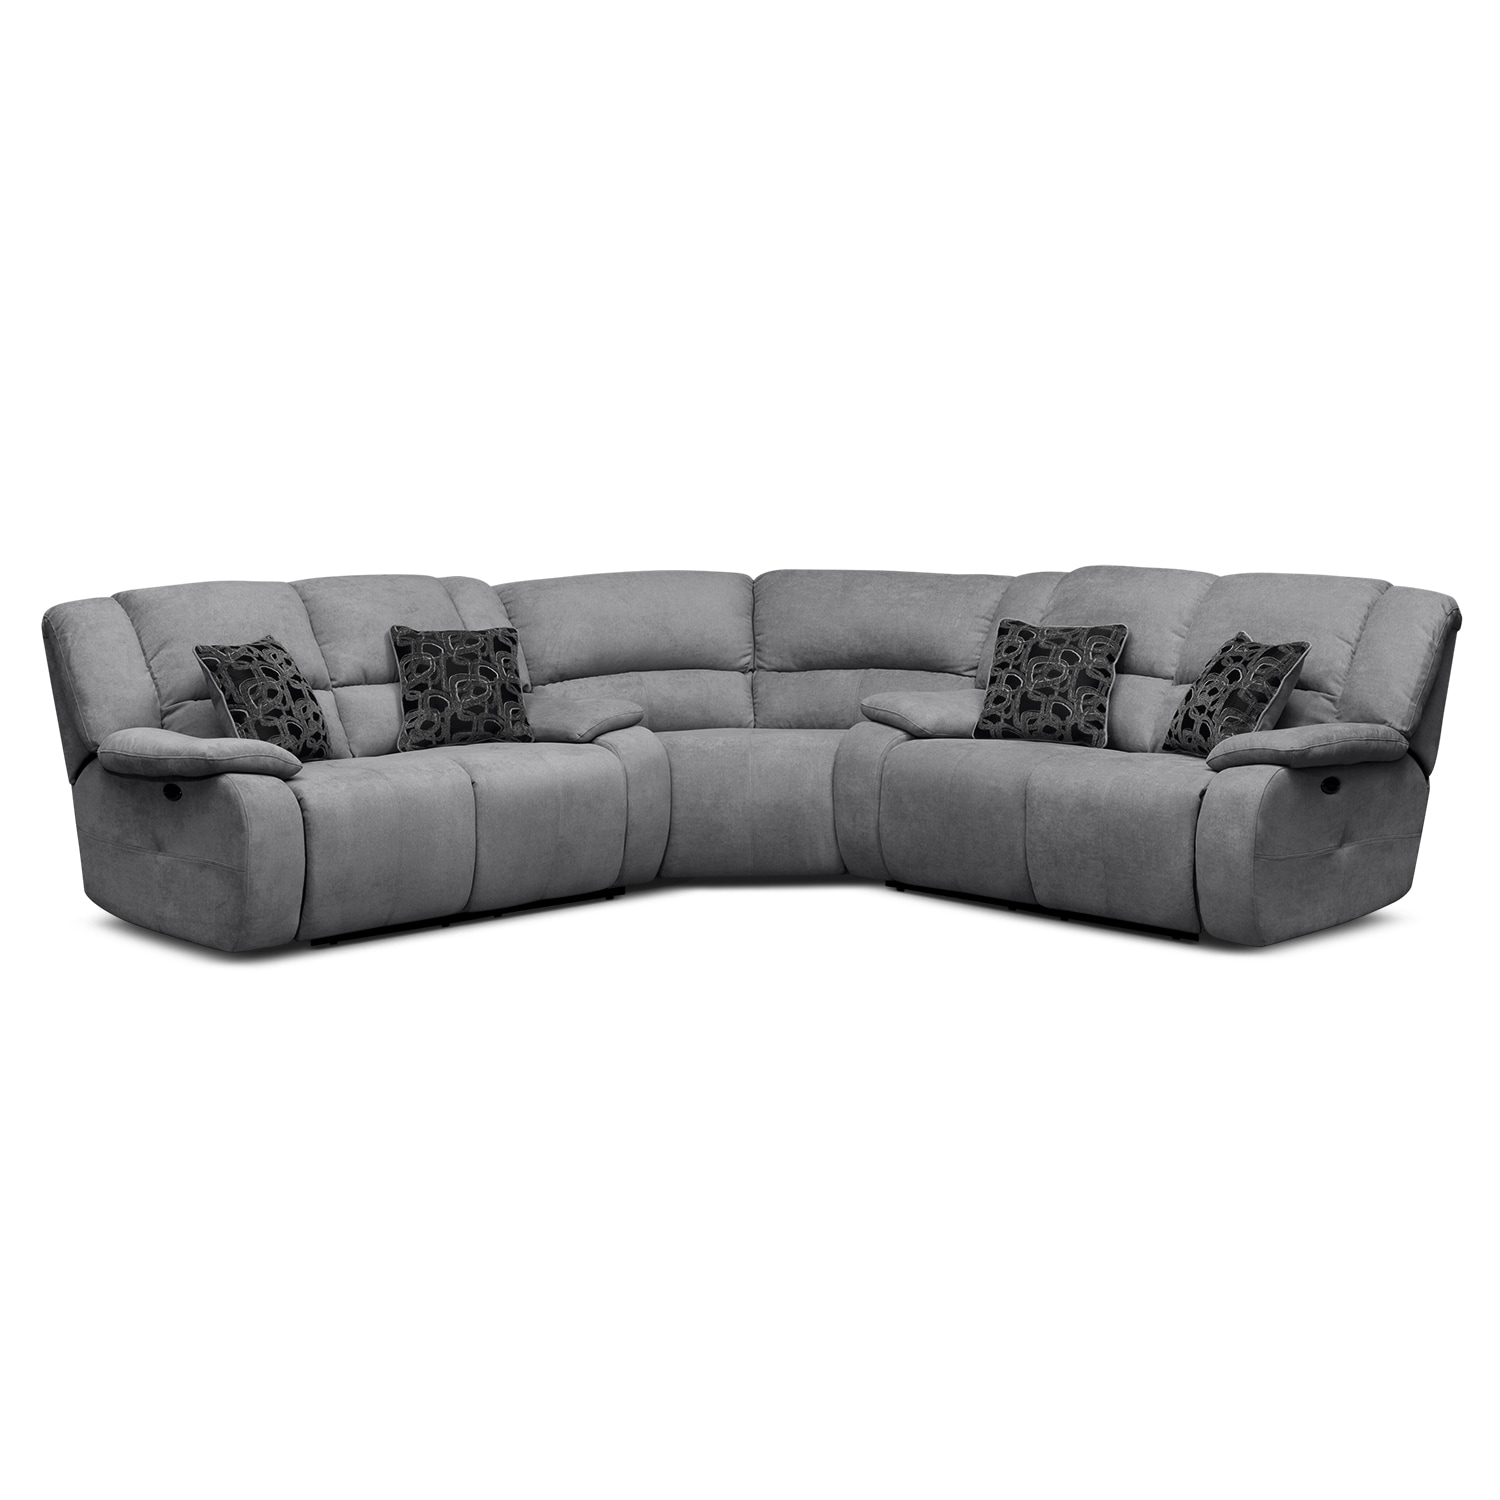 Living Room Furniture - Destin Gray II 3 Pc. Power Reclining Sectional (Alternate II)